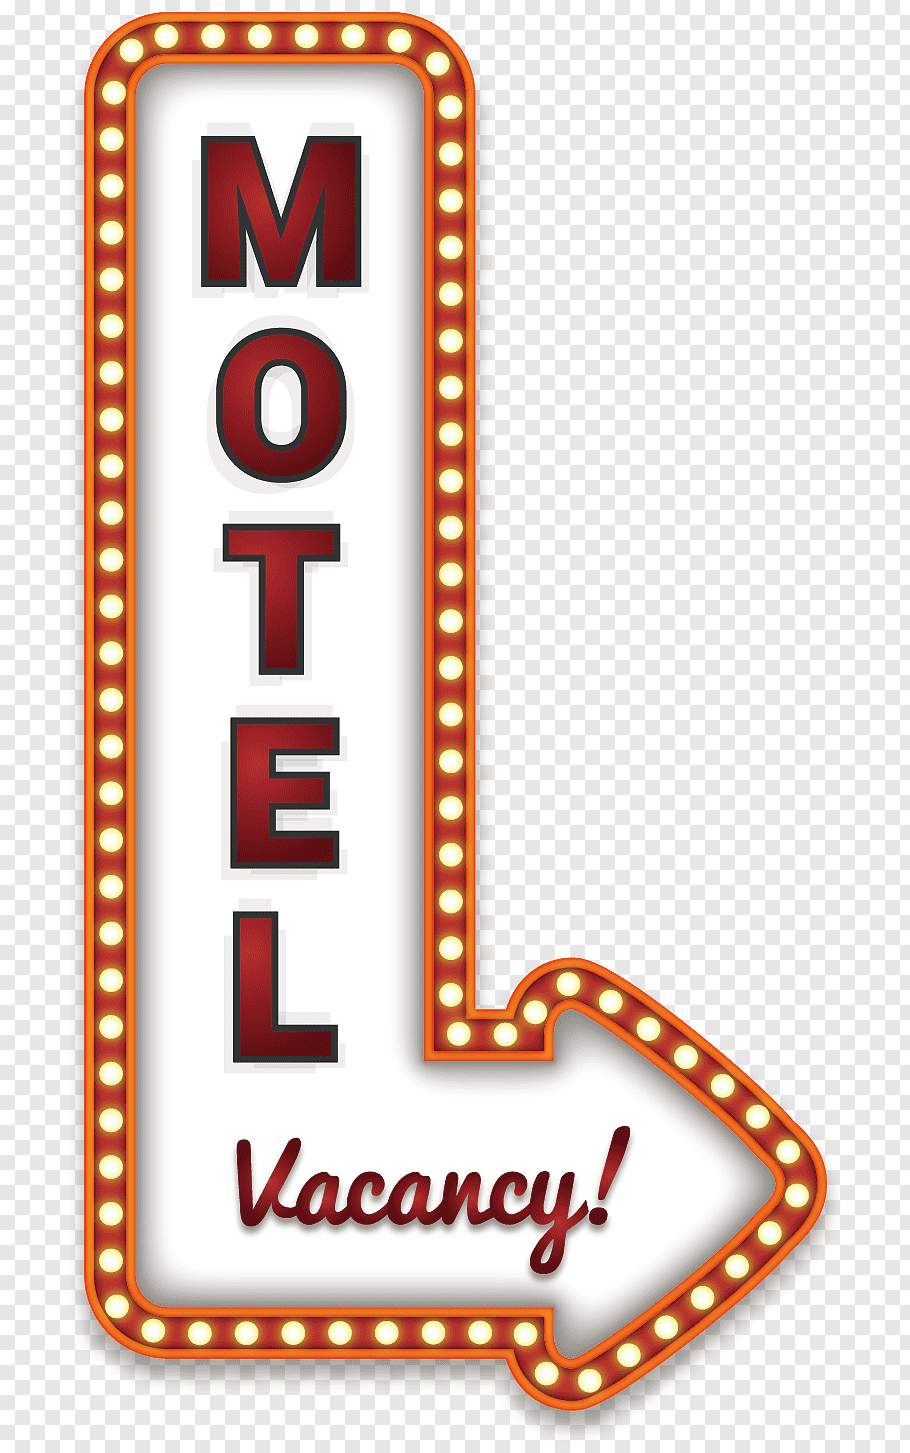 Blue Swallow Png - Motel Vacancy! illustration, Motel 6 Blue Swallow Motel Hotel ...